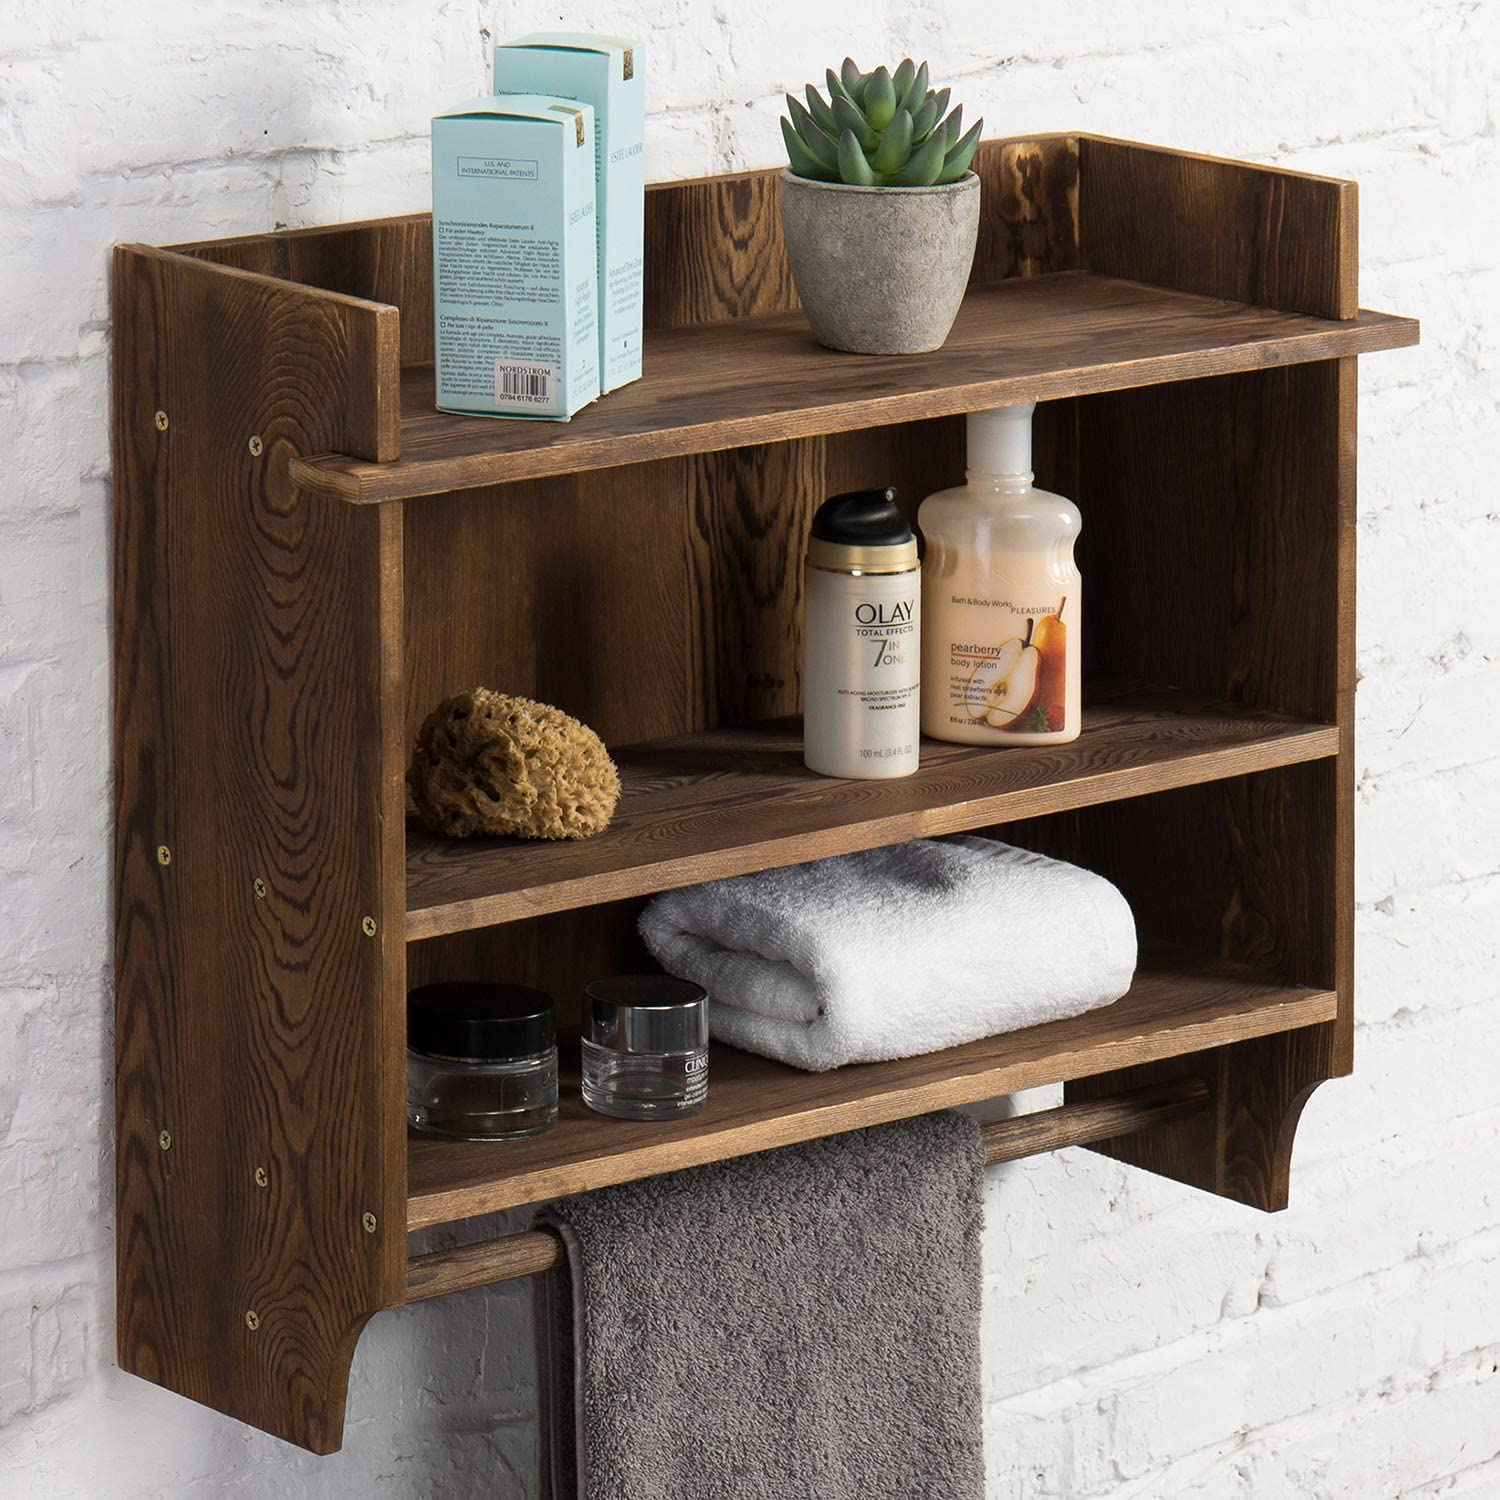 Amazon Com Mygift 3 Tier Wall Mounted Wood Bathroom Shelves With Hanging Towel Bar Home Kitchen